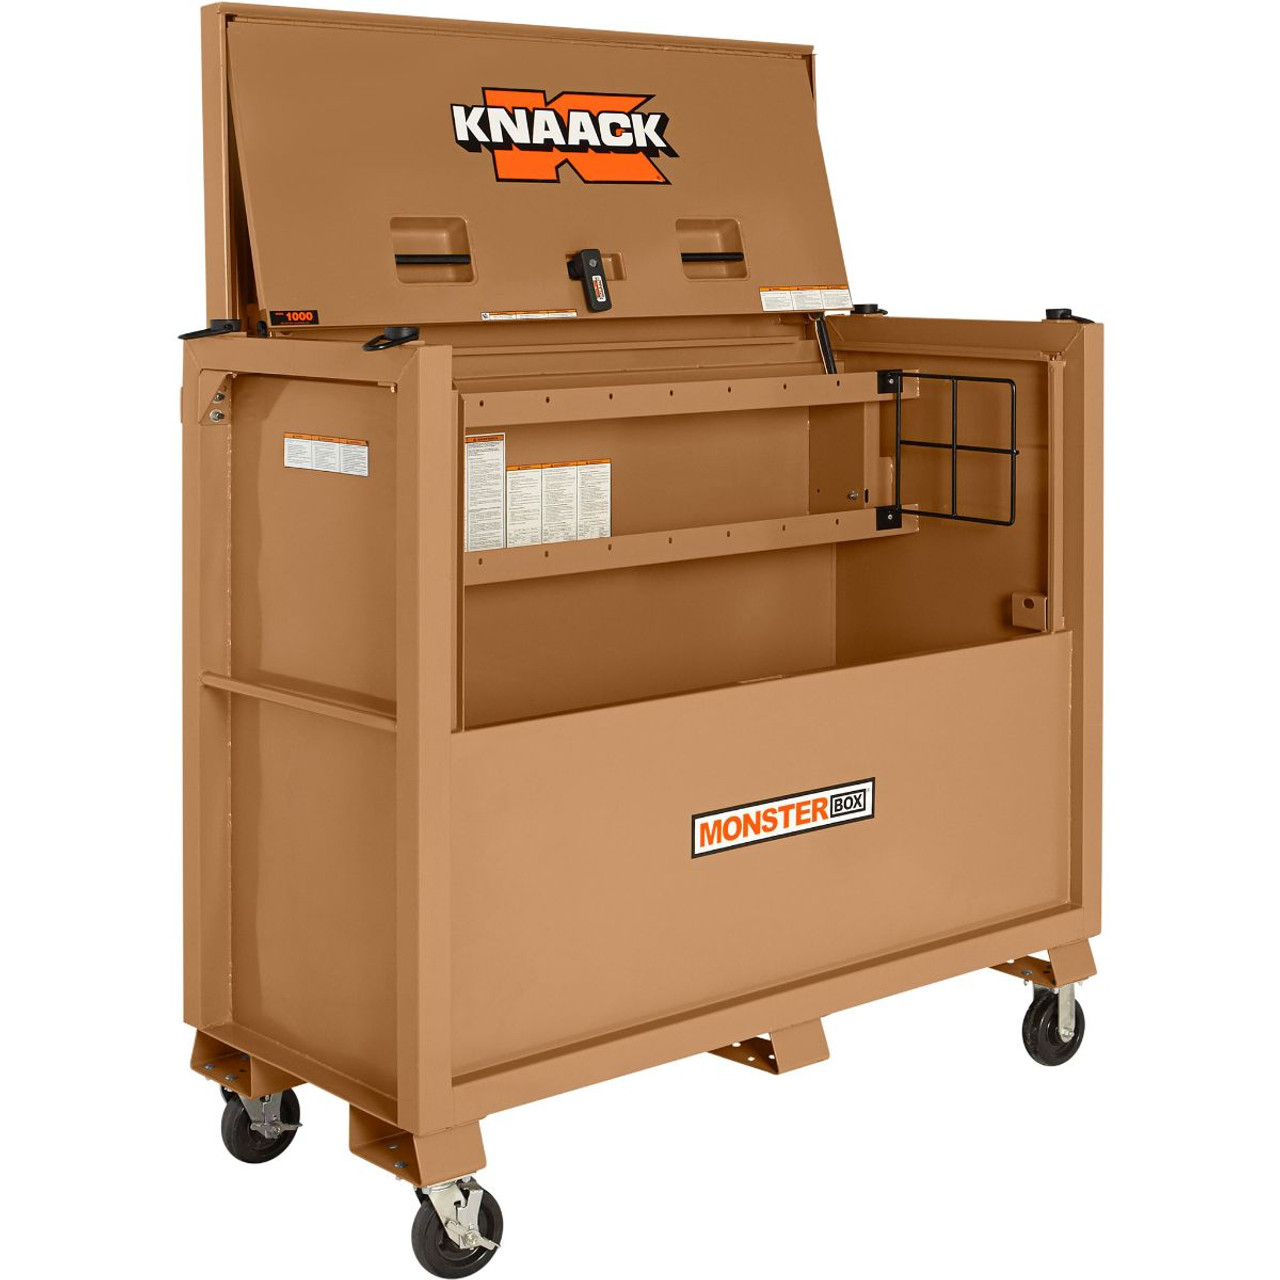 hight resolution of knaack model 1000 monster piano box industrial ladder supply co inc